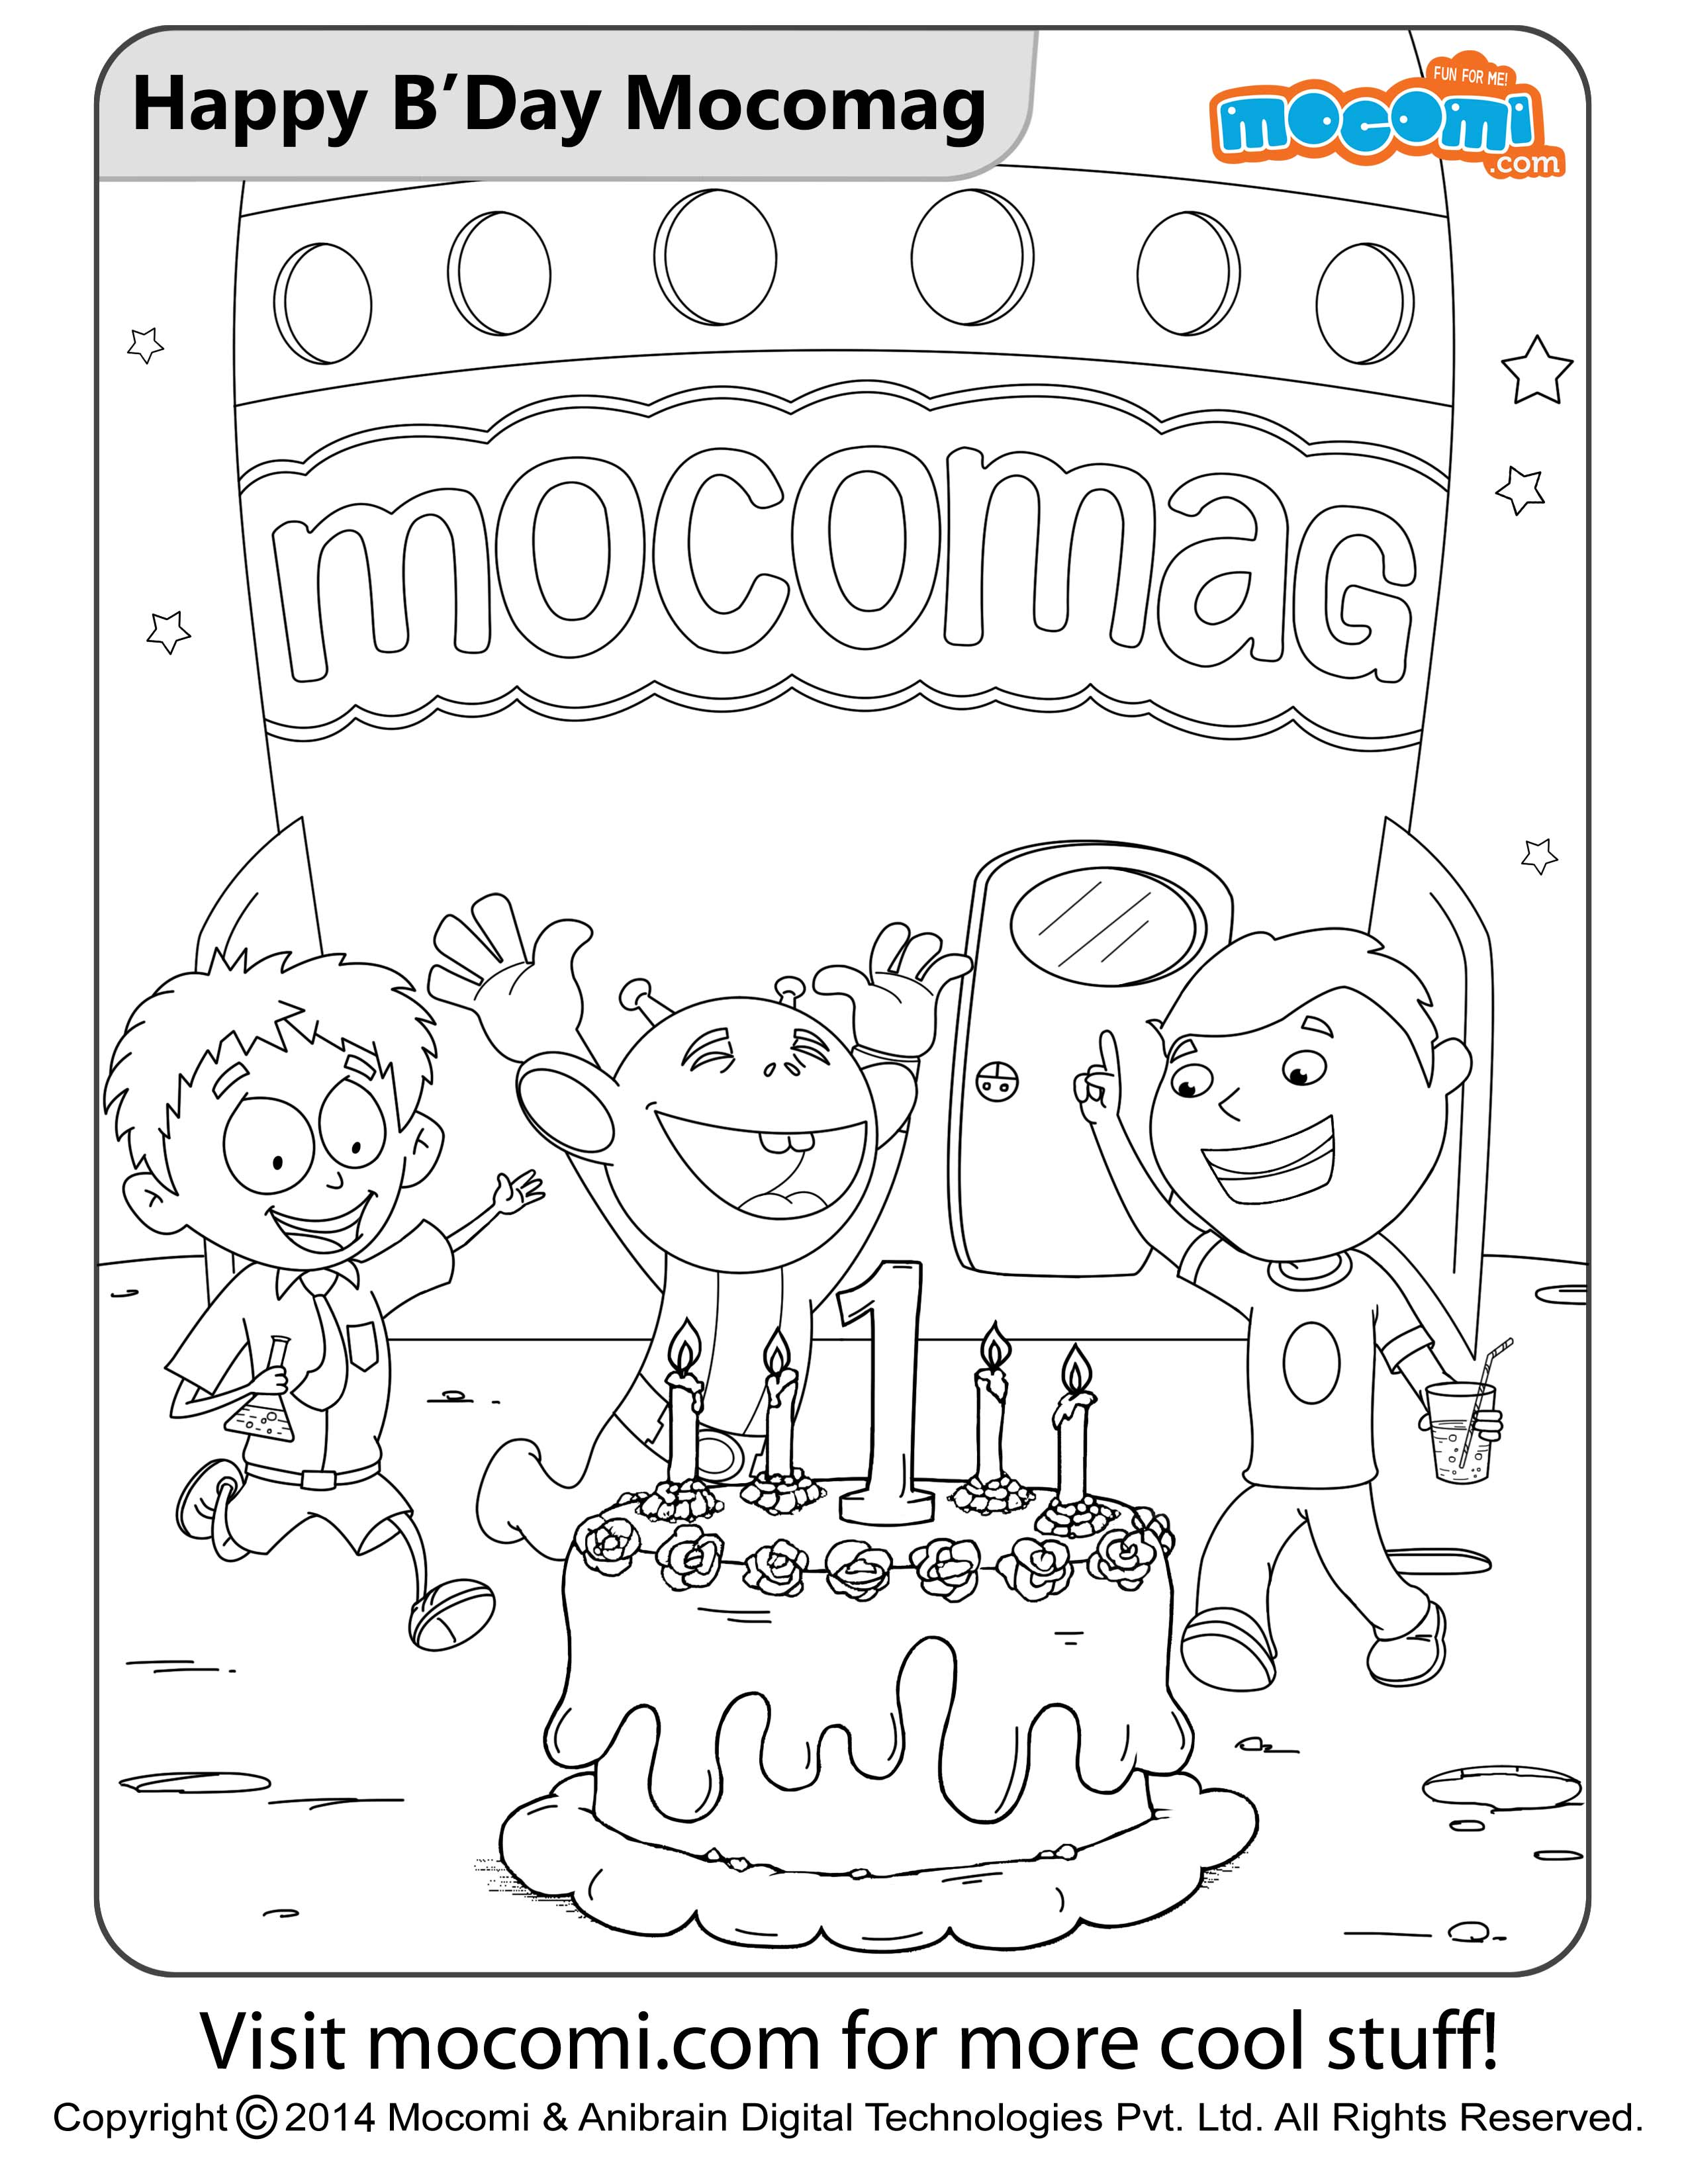 Happy Birthday Mocomag – Colouring Page